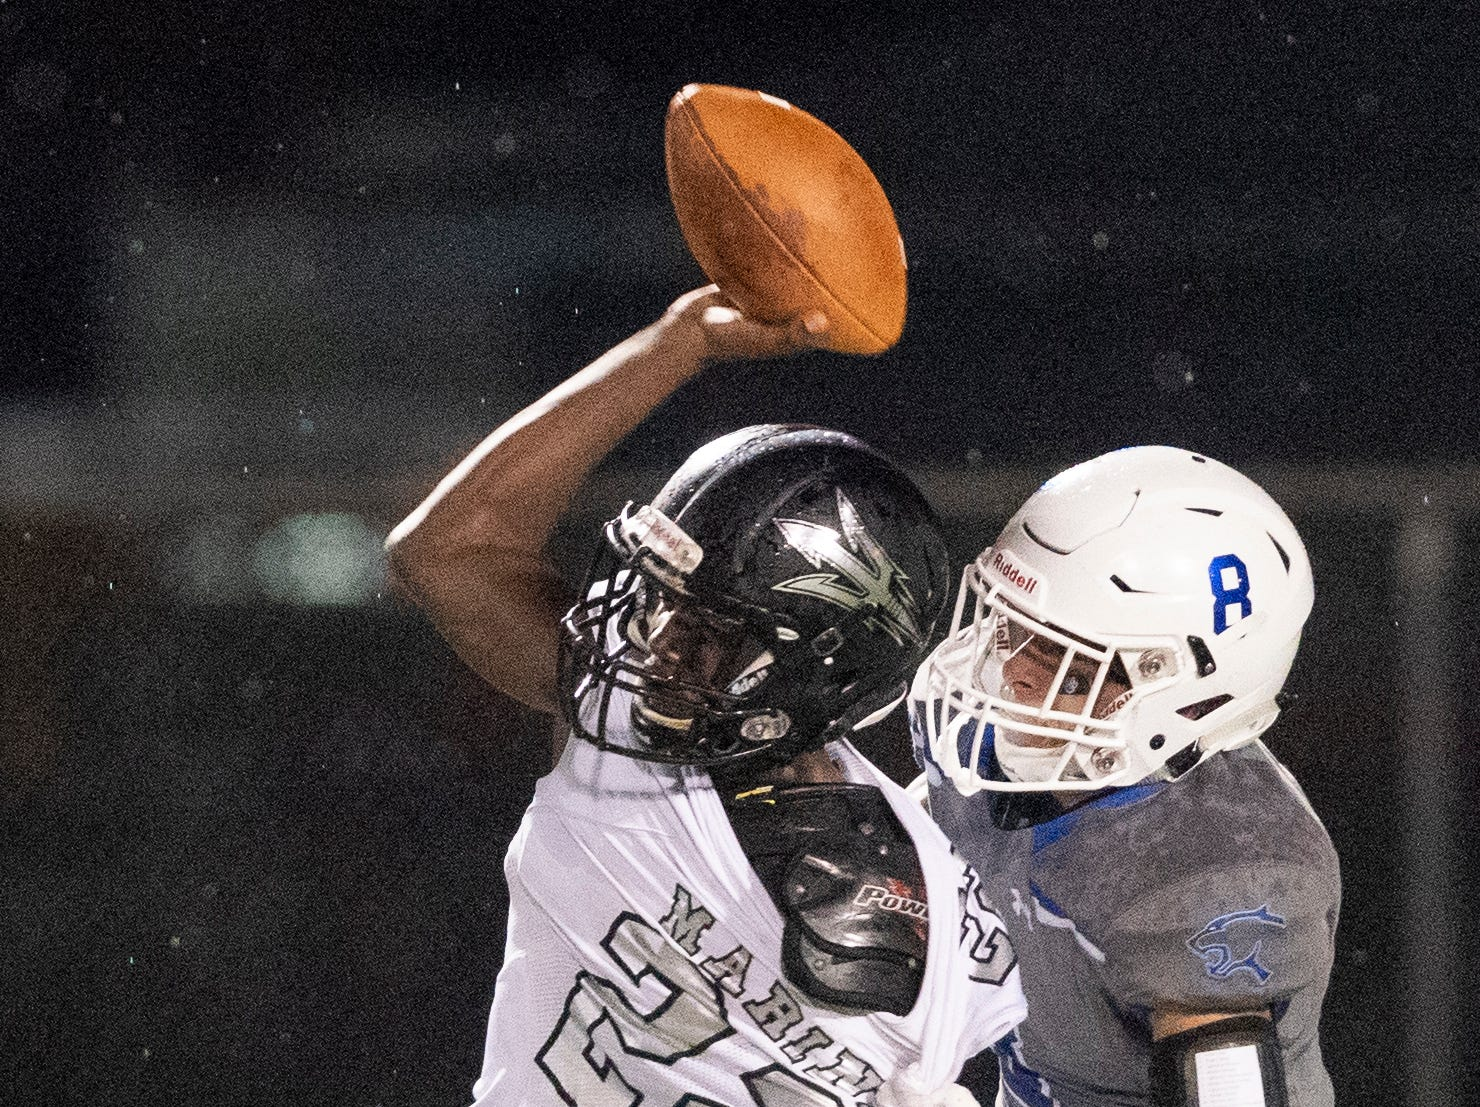 Tyler Echeverry of Barron Collier tries to bring down Mariner quarterback Rashawn Hunter during the game at Barron Collier High Friday night, September 21, 2018.